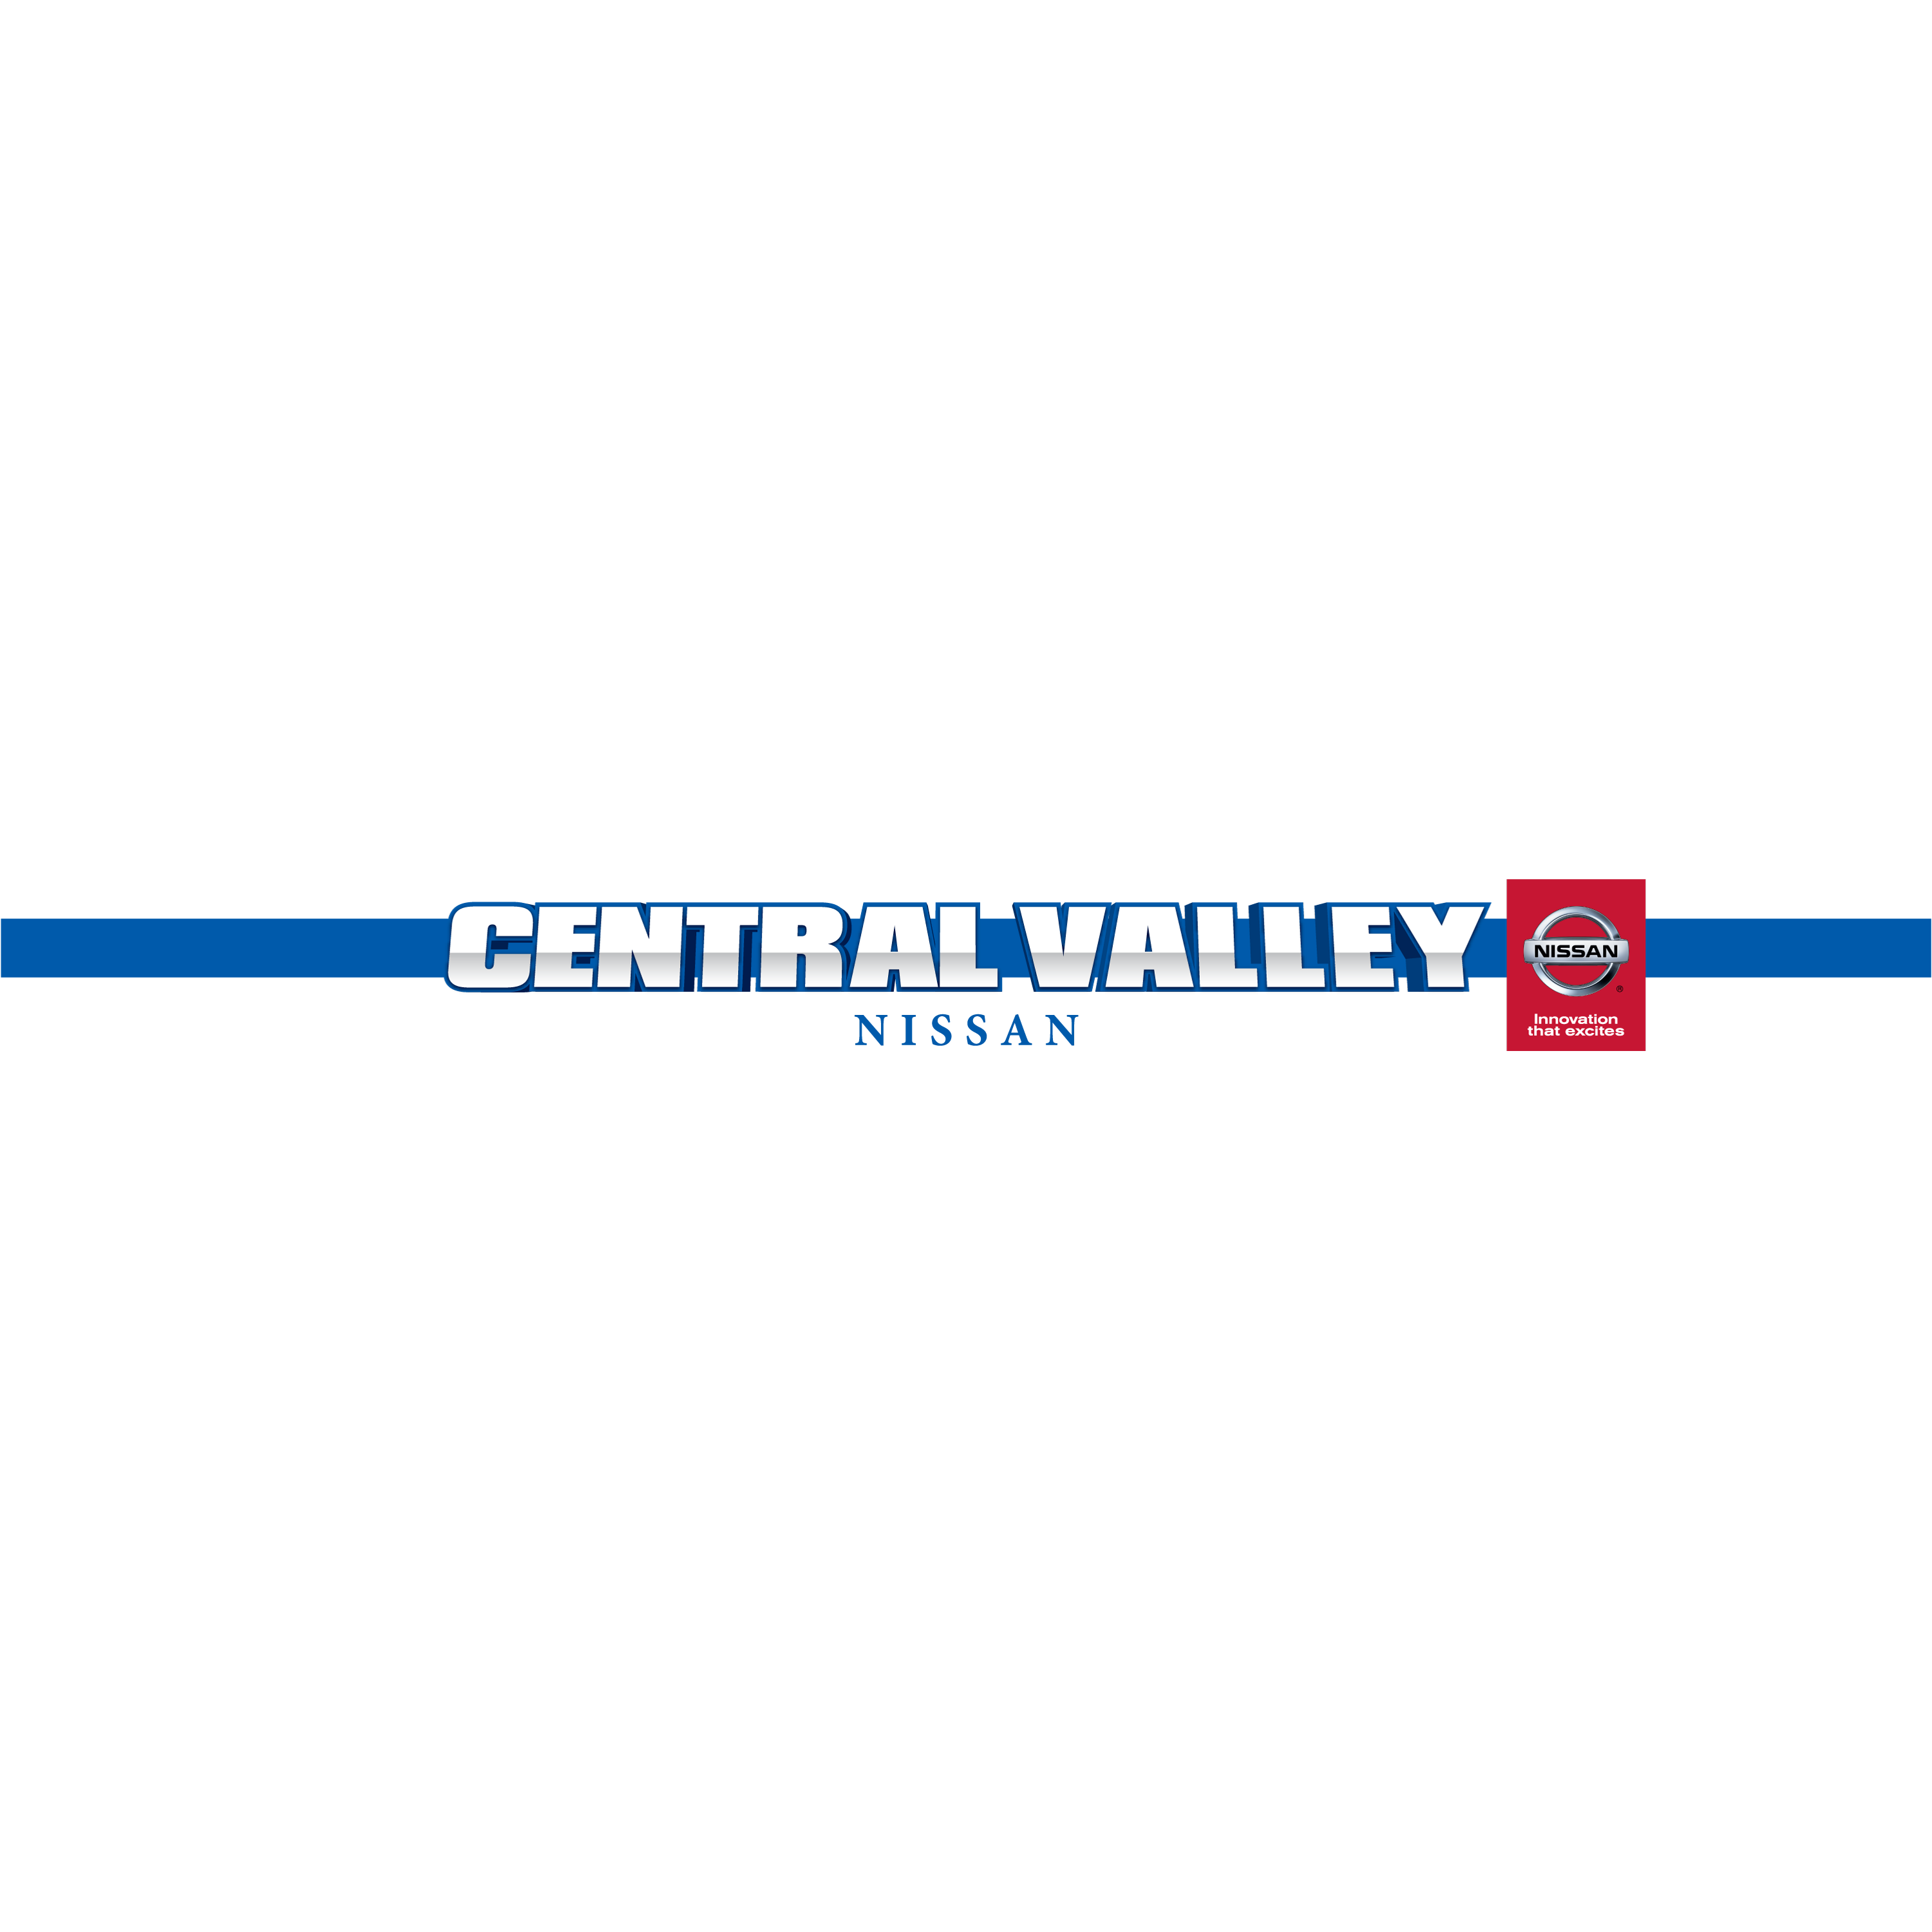 Central Valley Nissan Modesto Ca Business Directory